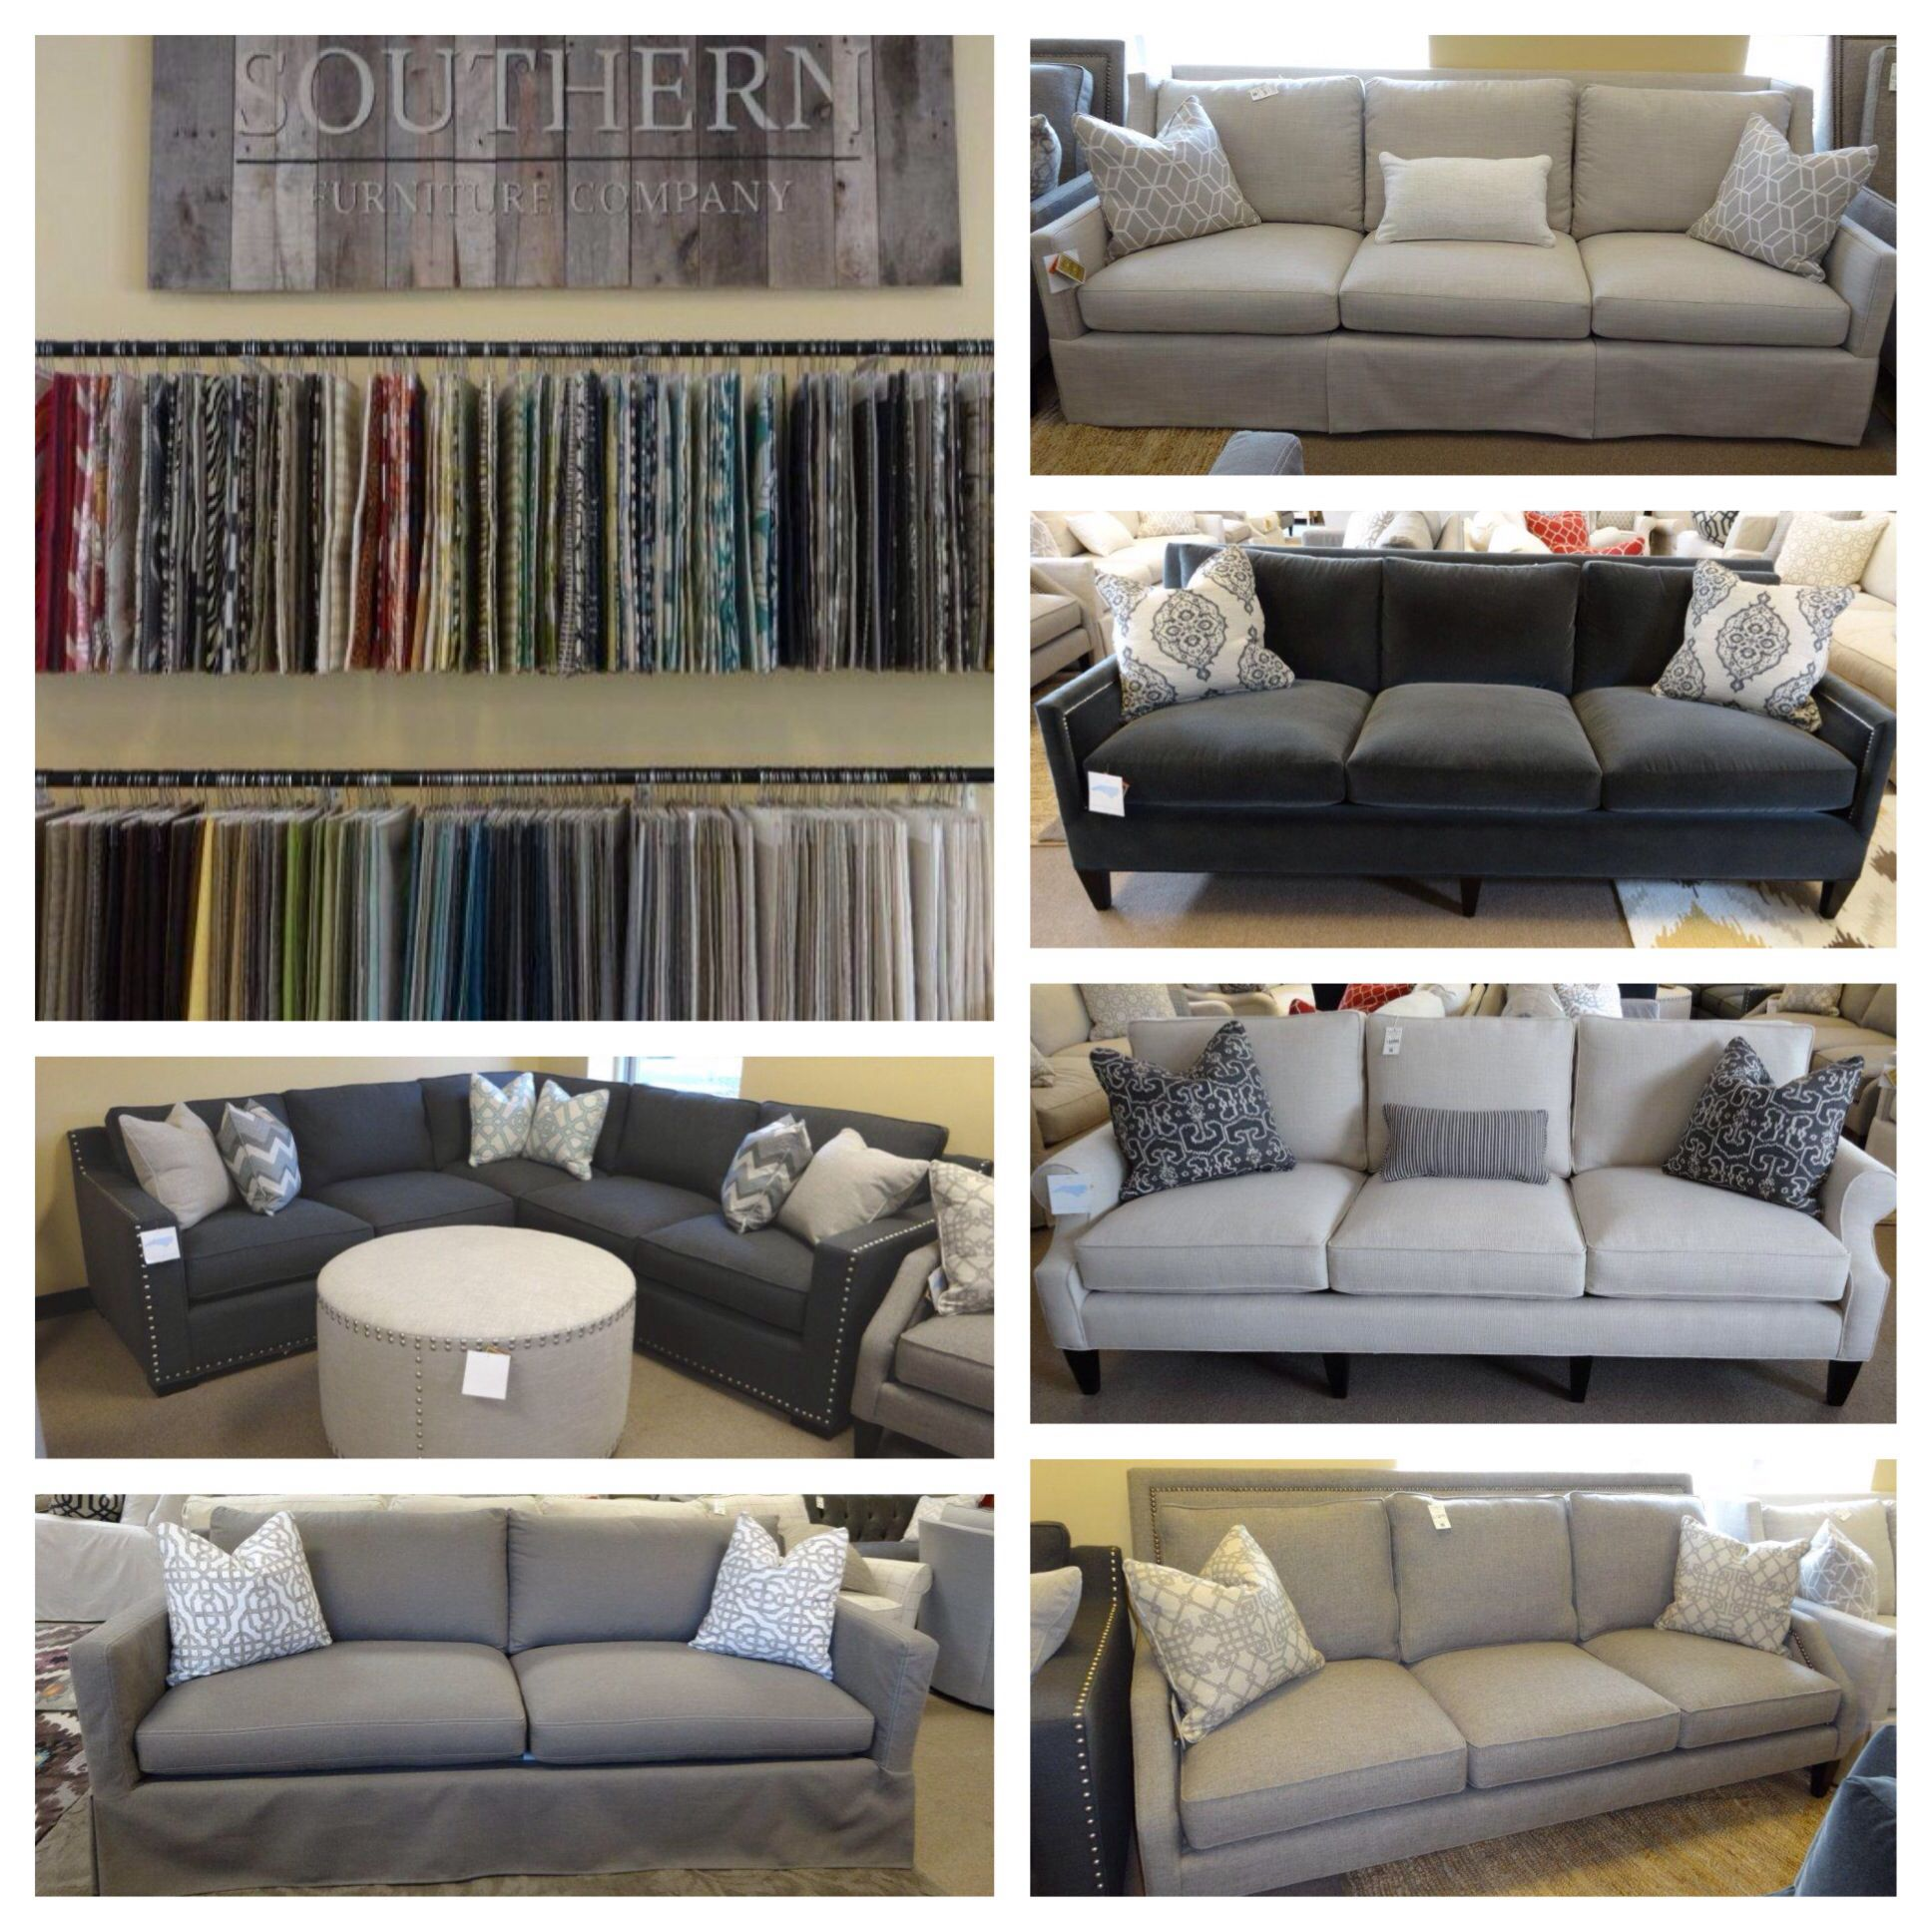 Southern Furniture Hudson Sofa With Ottoman Chaise New On The Showroom Floor Company